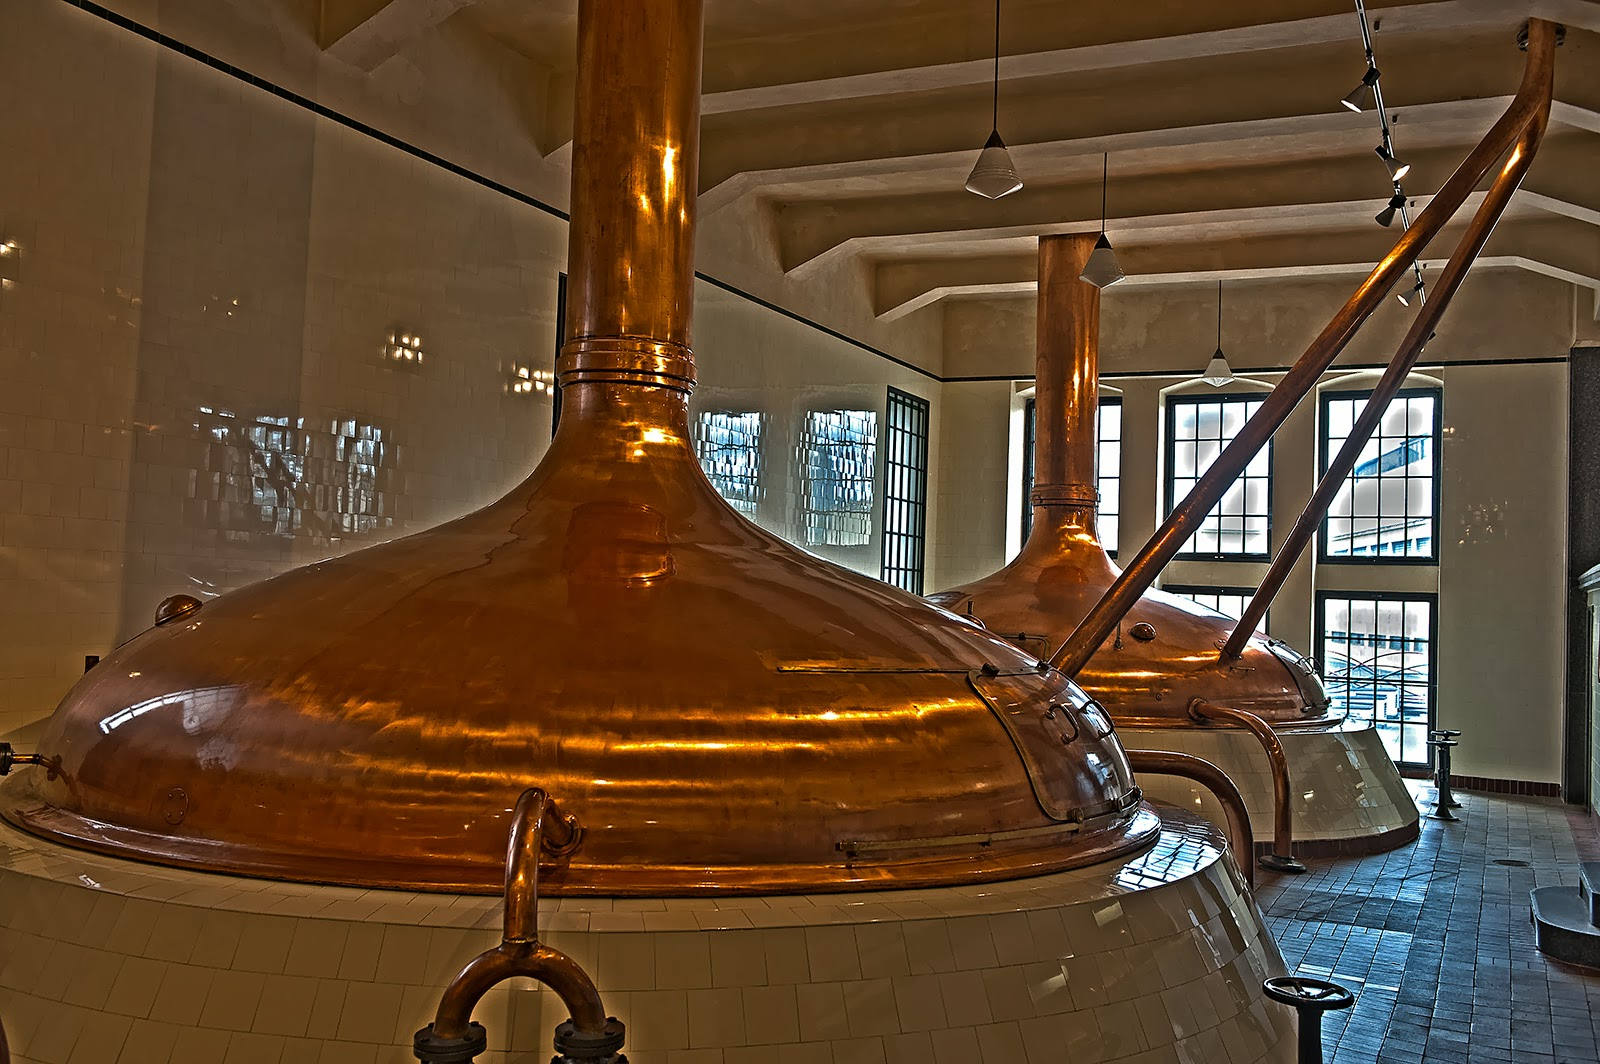 Plzen Czech Republic, Plzen, Pilsen, Czech Republic, Pilsner Urquell, Pilsner Beer, Brewing Kettle, Copper Kettle